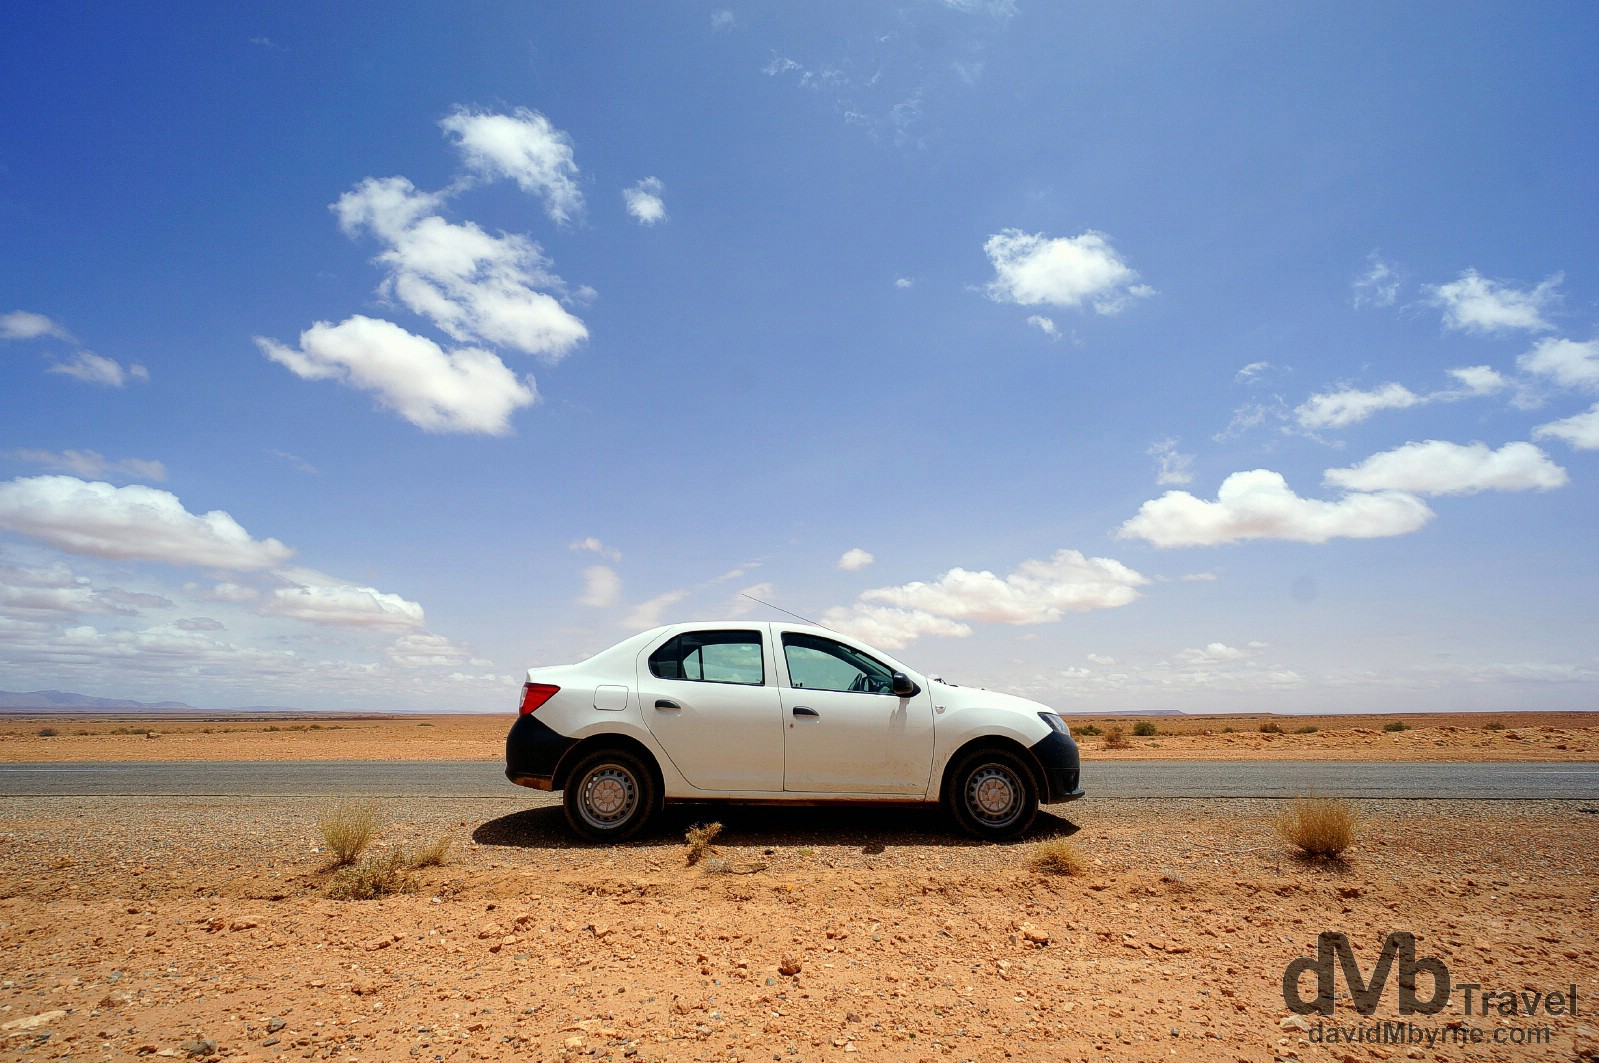 Dacia Logan. On the road outside Er Rachedia, Morocco. May 18th, 2014.